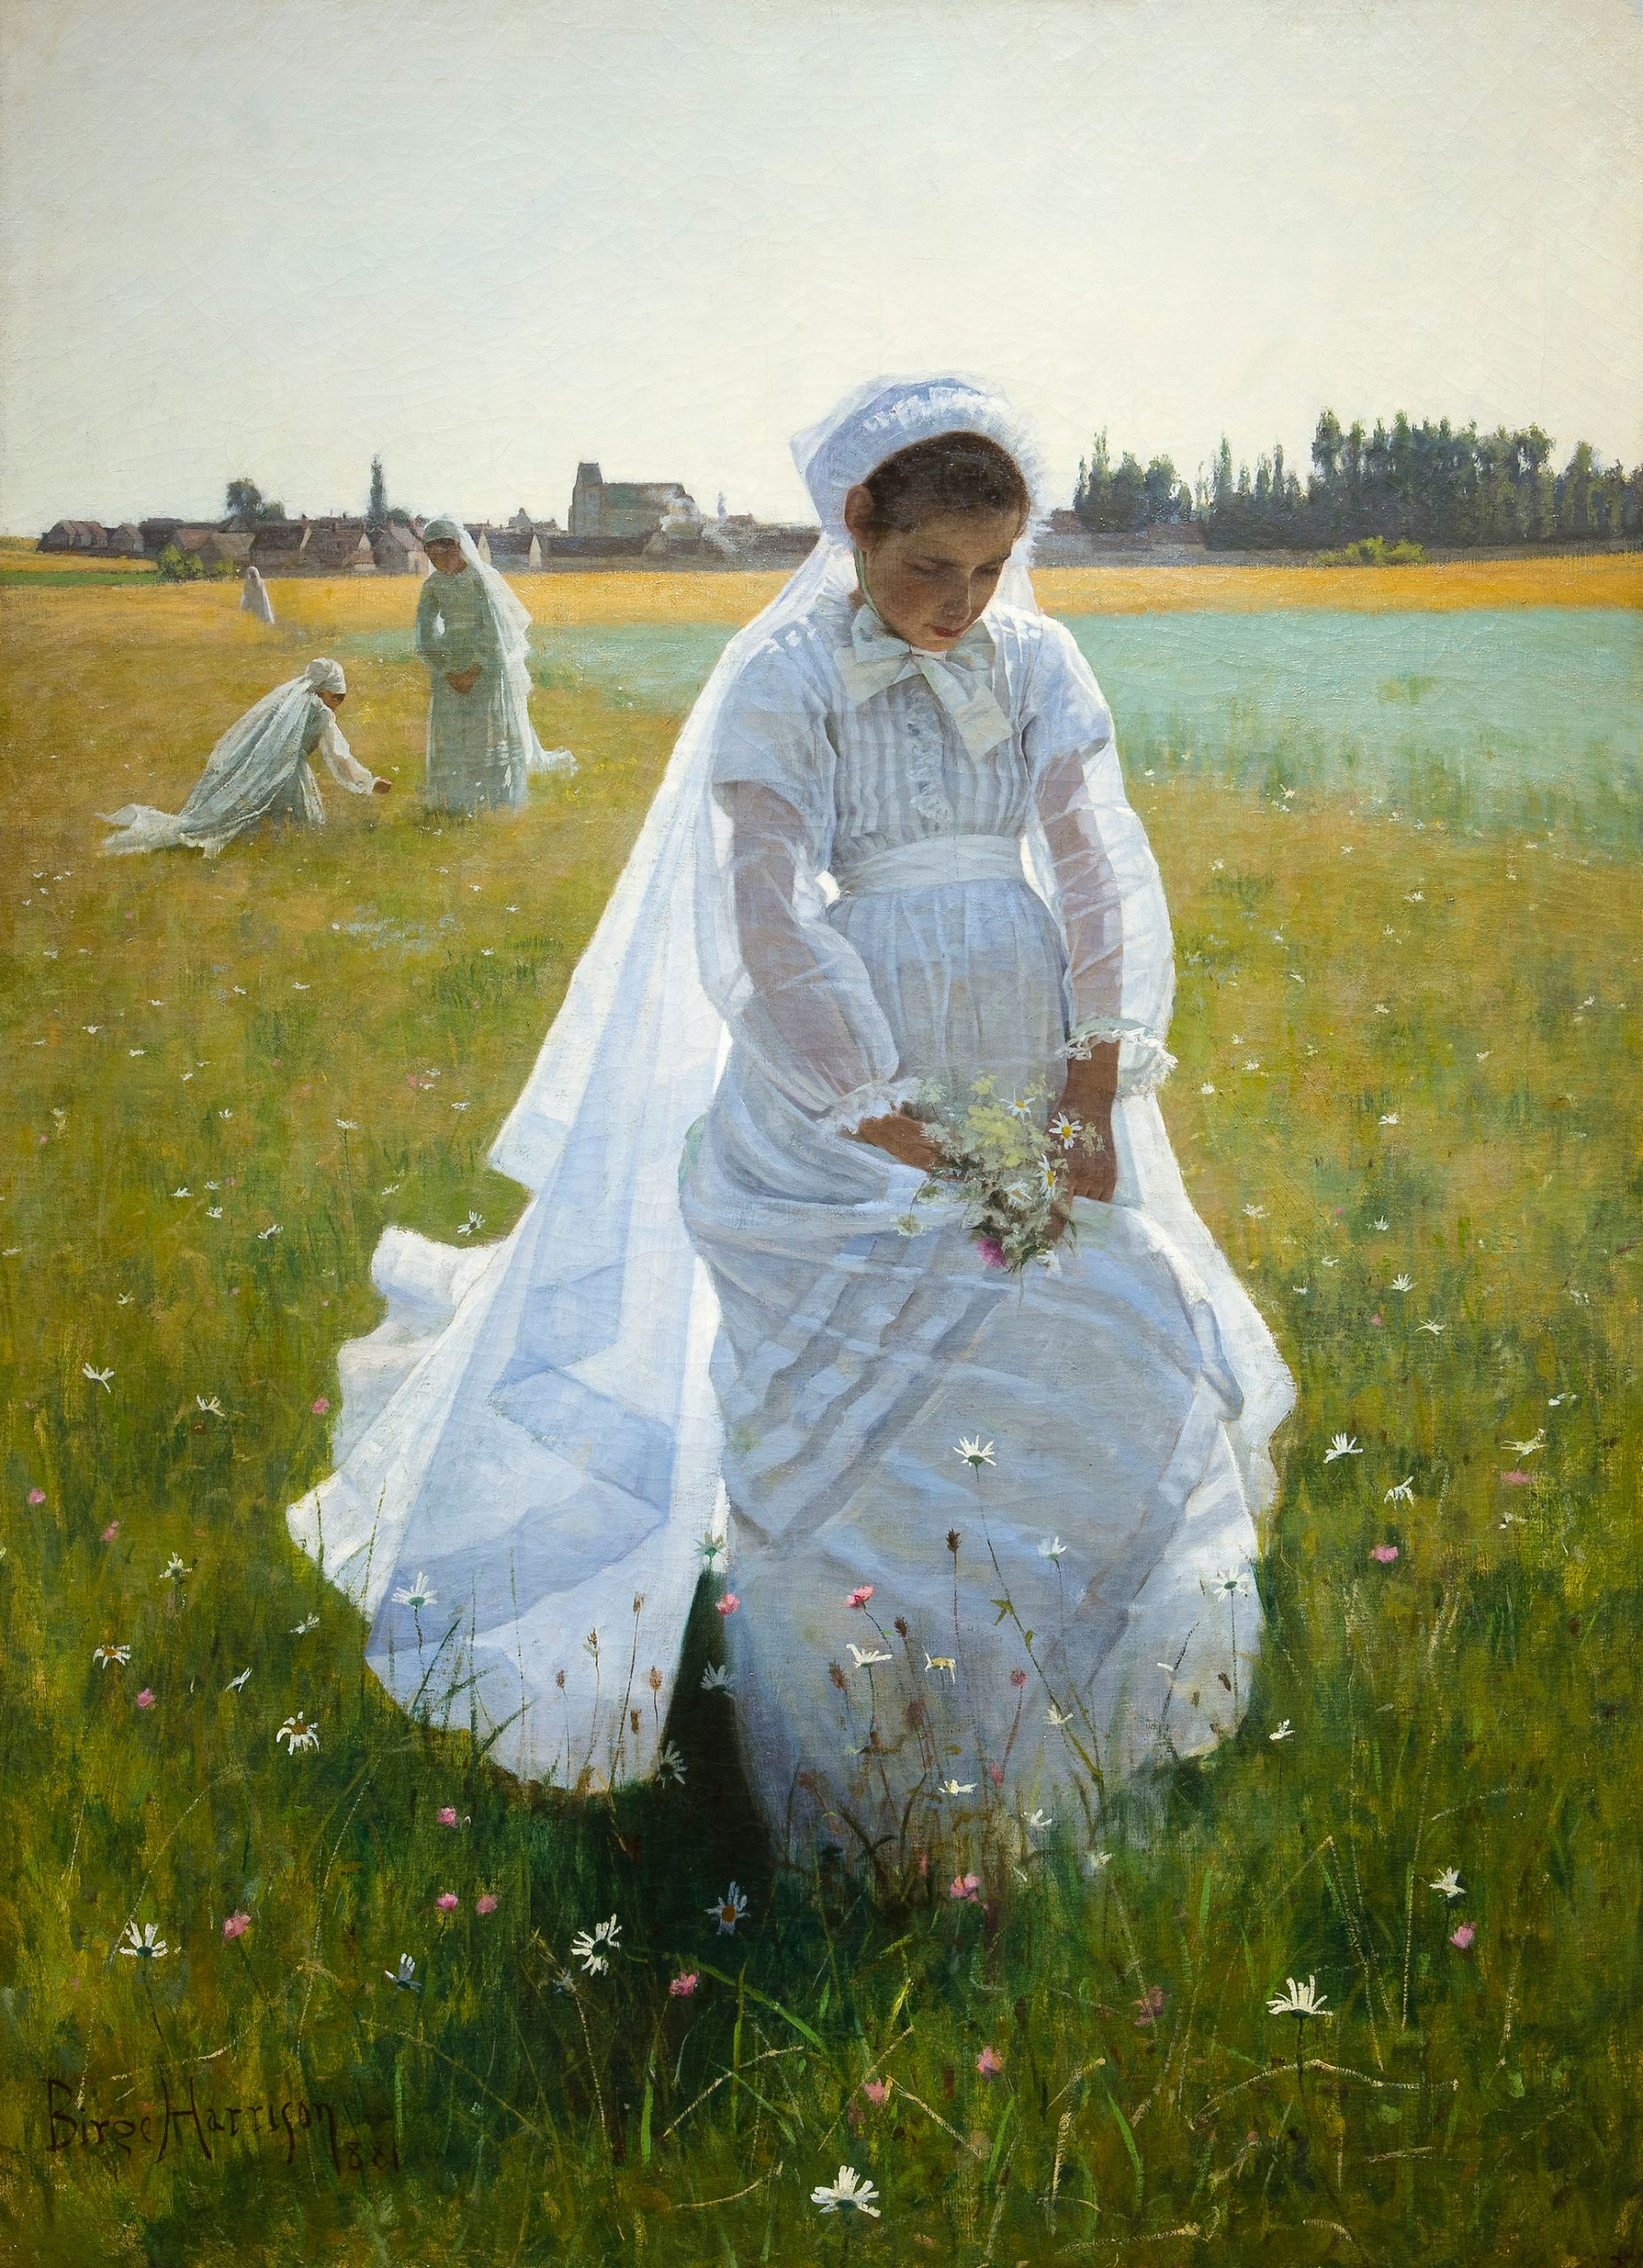 A young girl walks across a field, head down, wearing a communion gown.